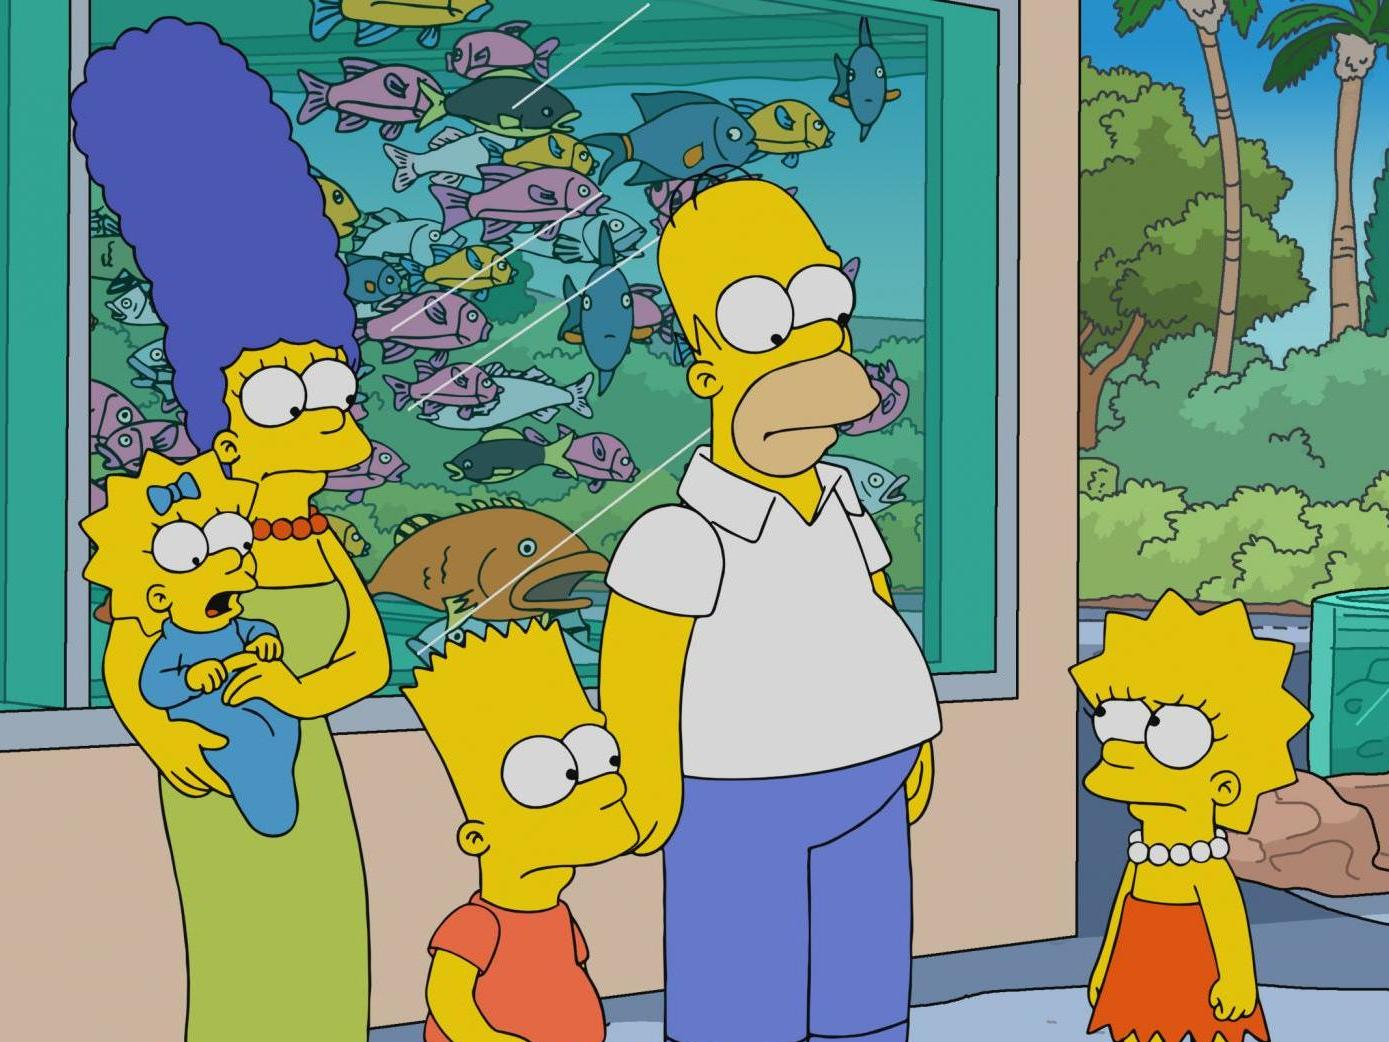 Coronavirus The Simpsons Almost Predicted The Outbreak In 1993